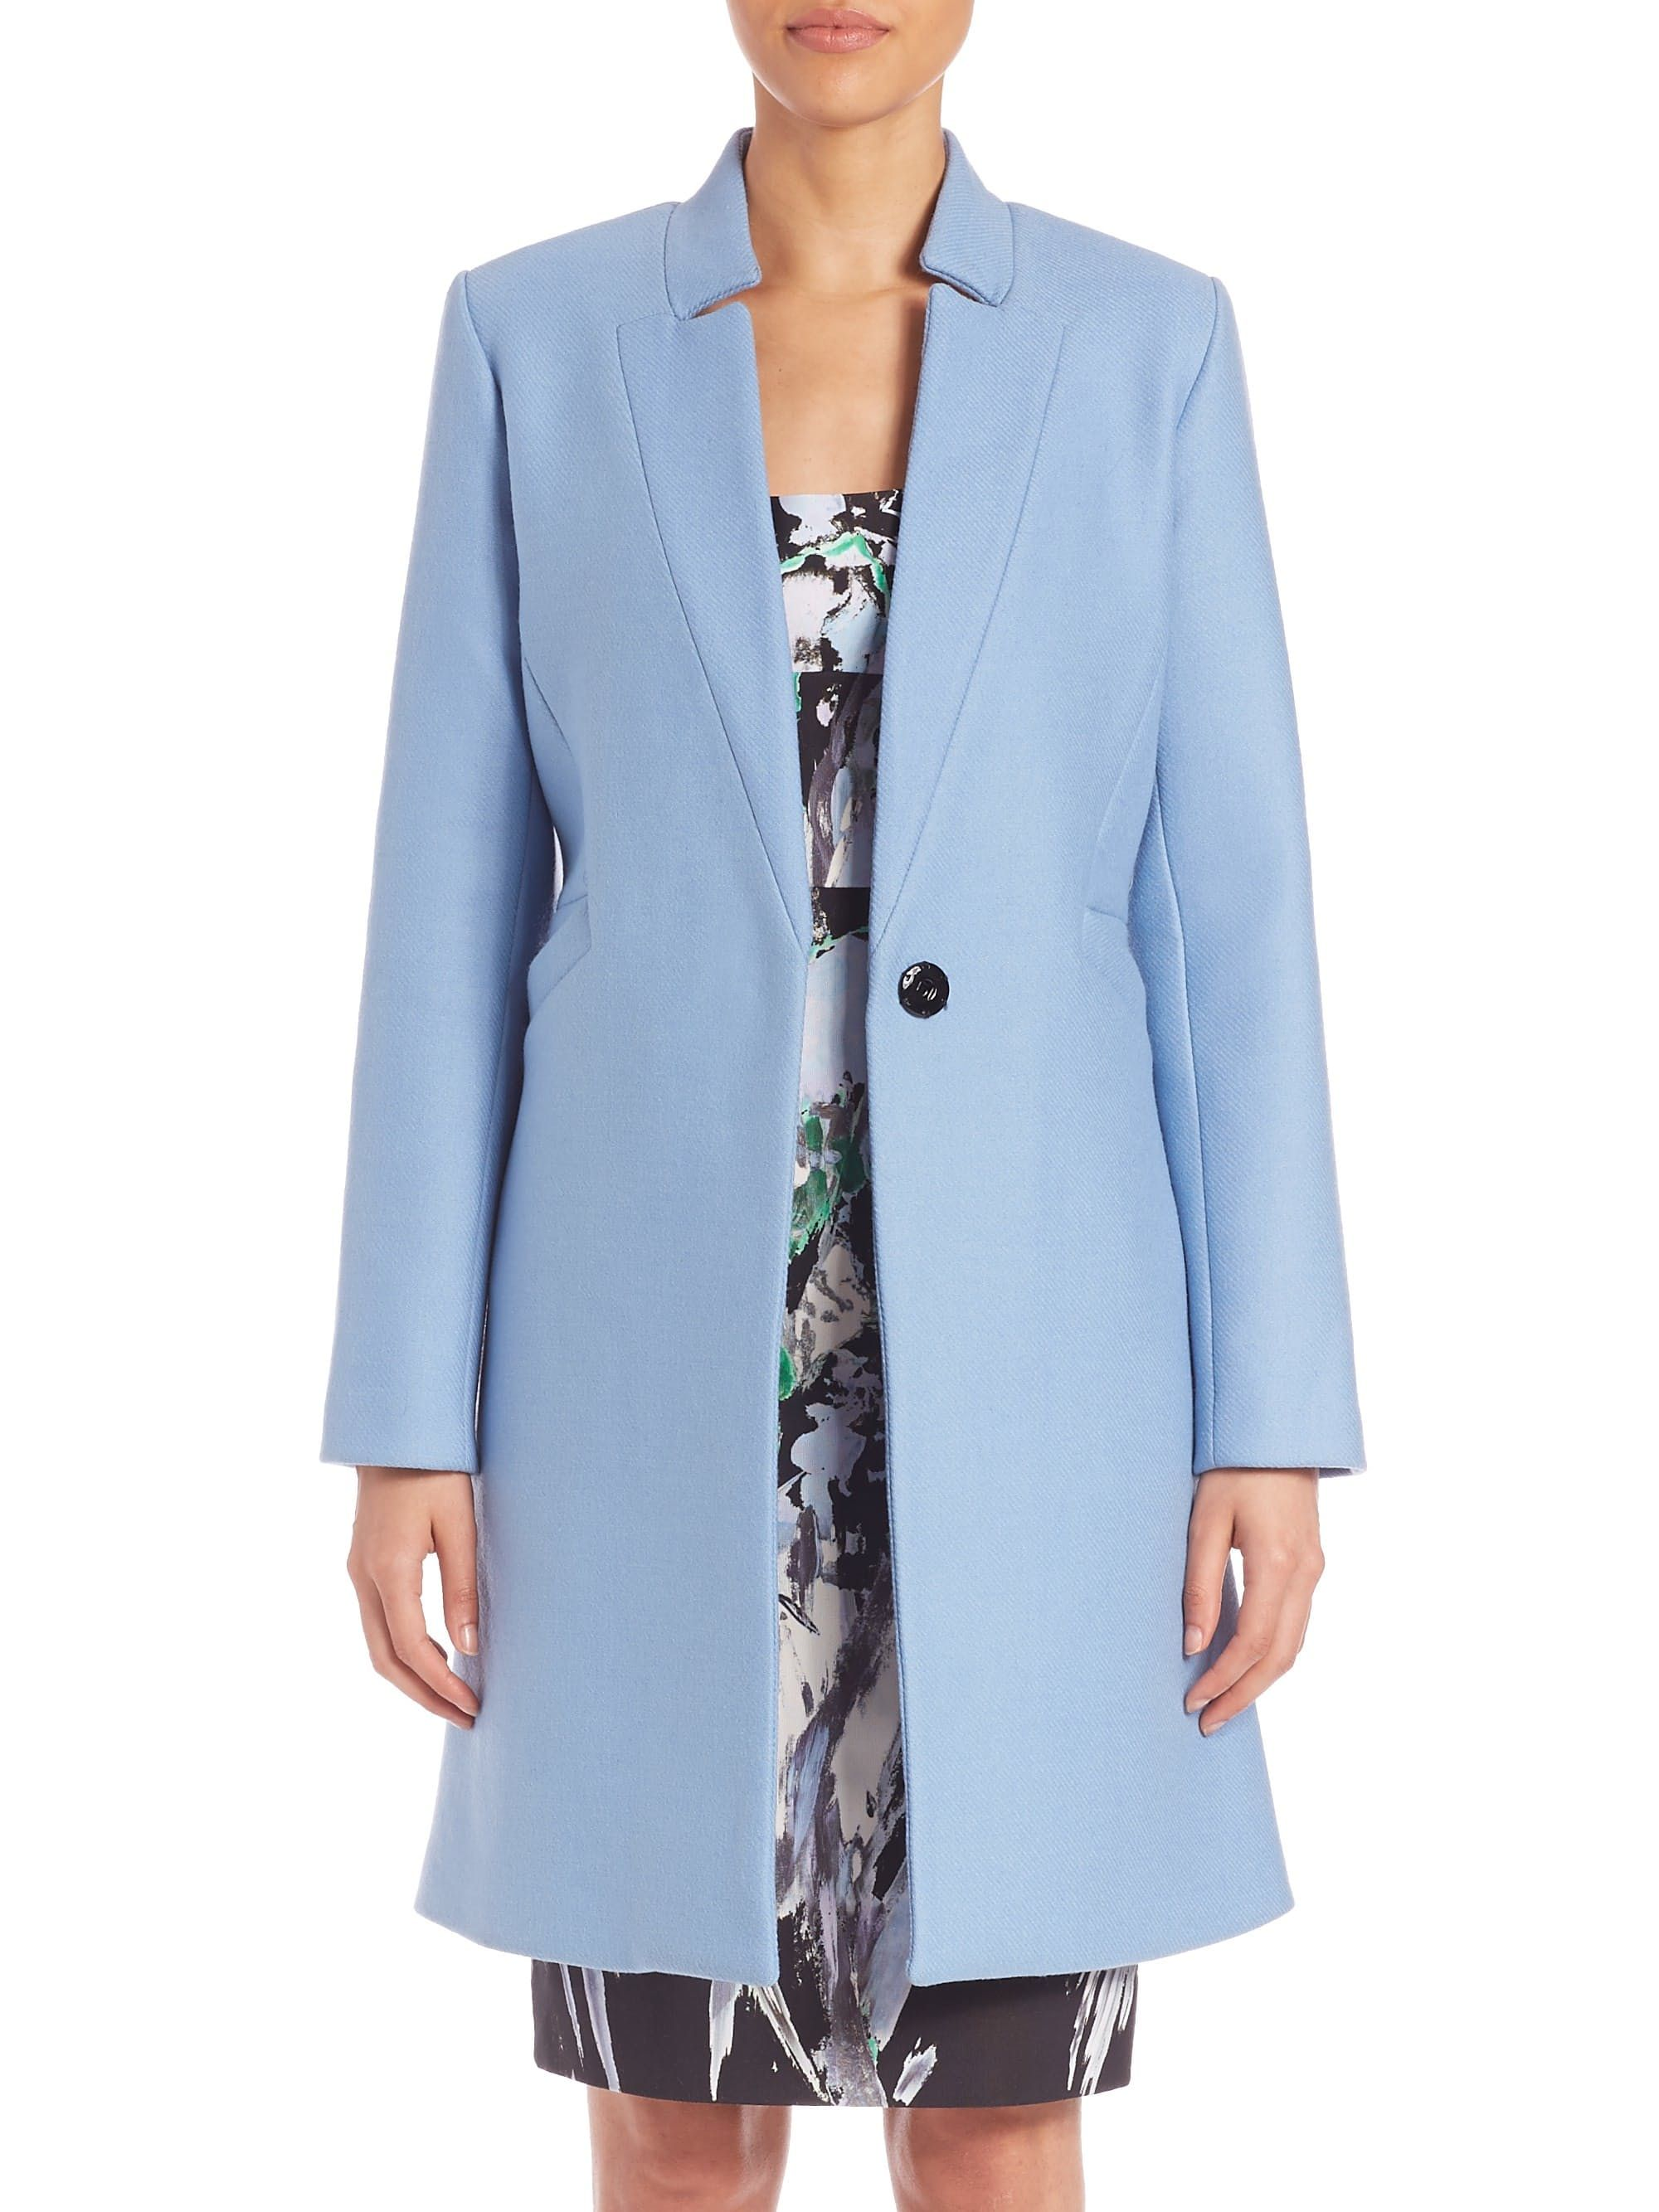 Solid Virgin Wool Blend Coat By Milly Coat Stand Collar Coat Clothes Design [ 2667 x 2000 Pixel ]